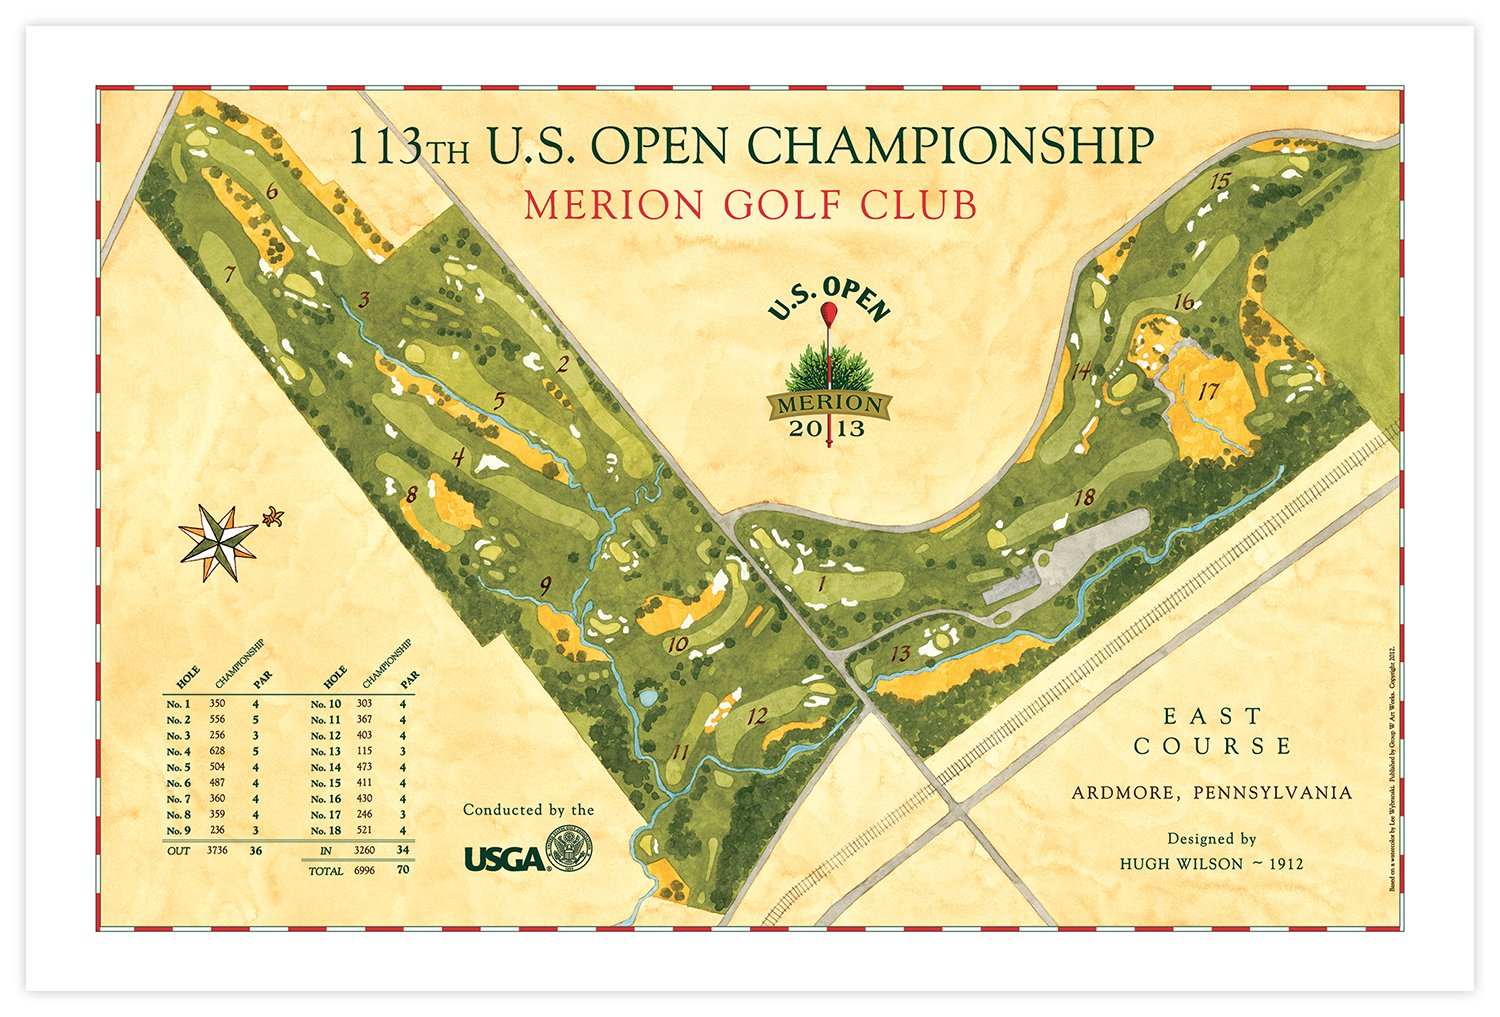 Us Open Course Map Signed 2013 U.S. Open Course Map of Merion Golf Club